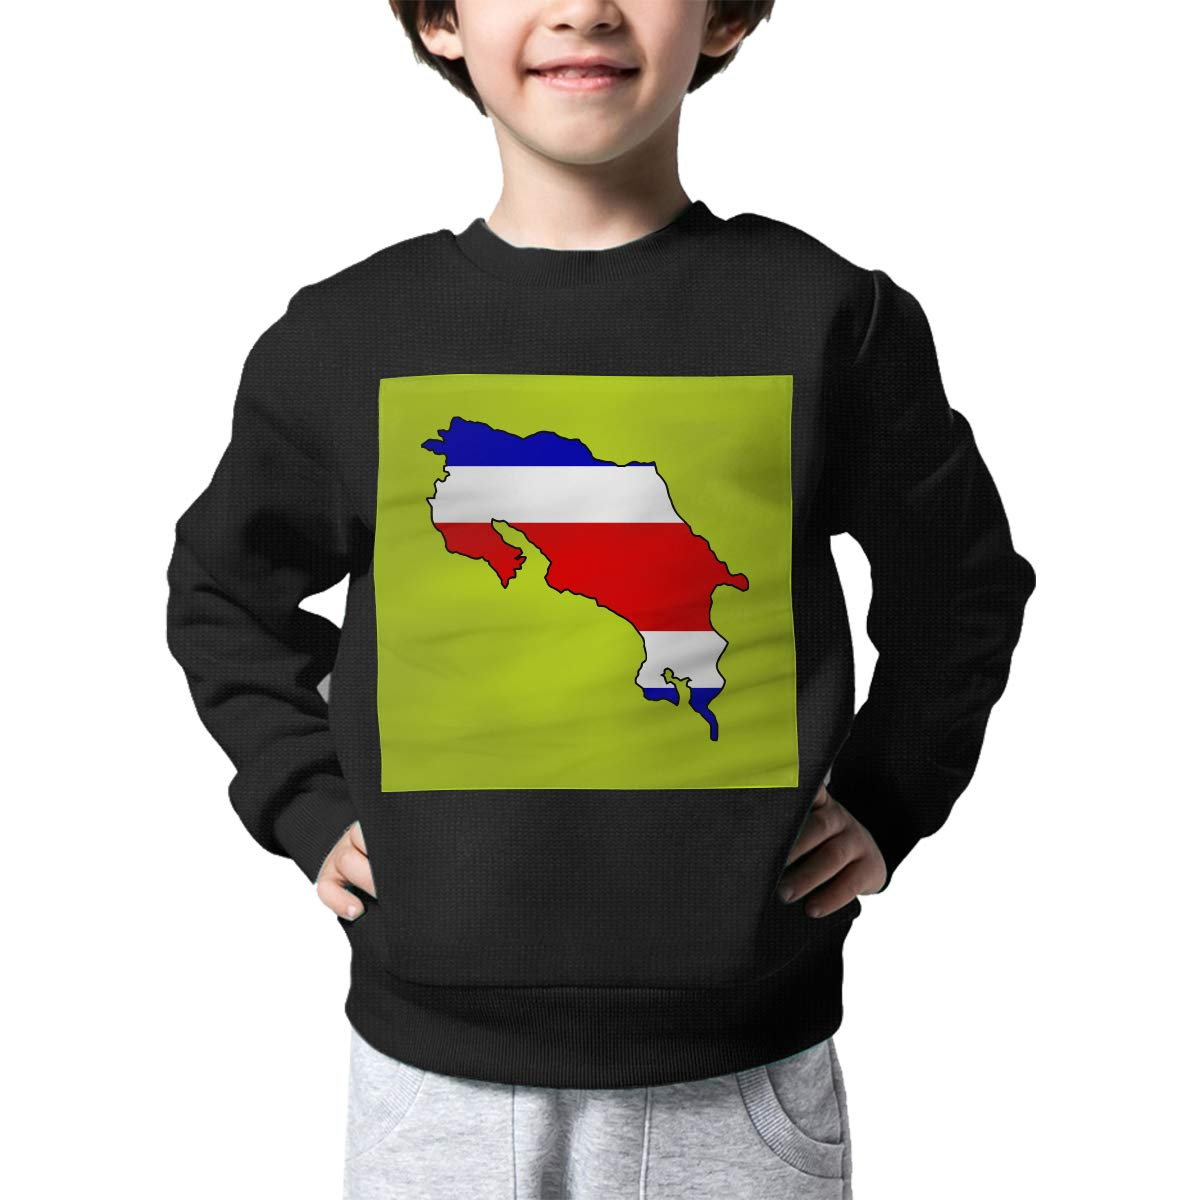 AW-KOCP Childrens Costa Rica Flag Map Sweater Baby Girls Outerwear